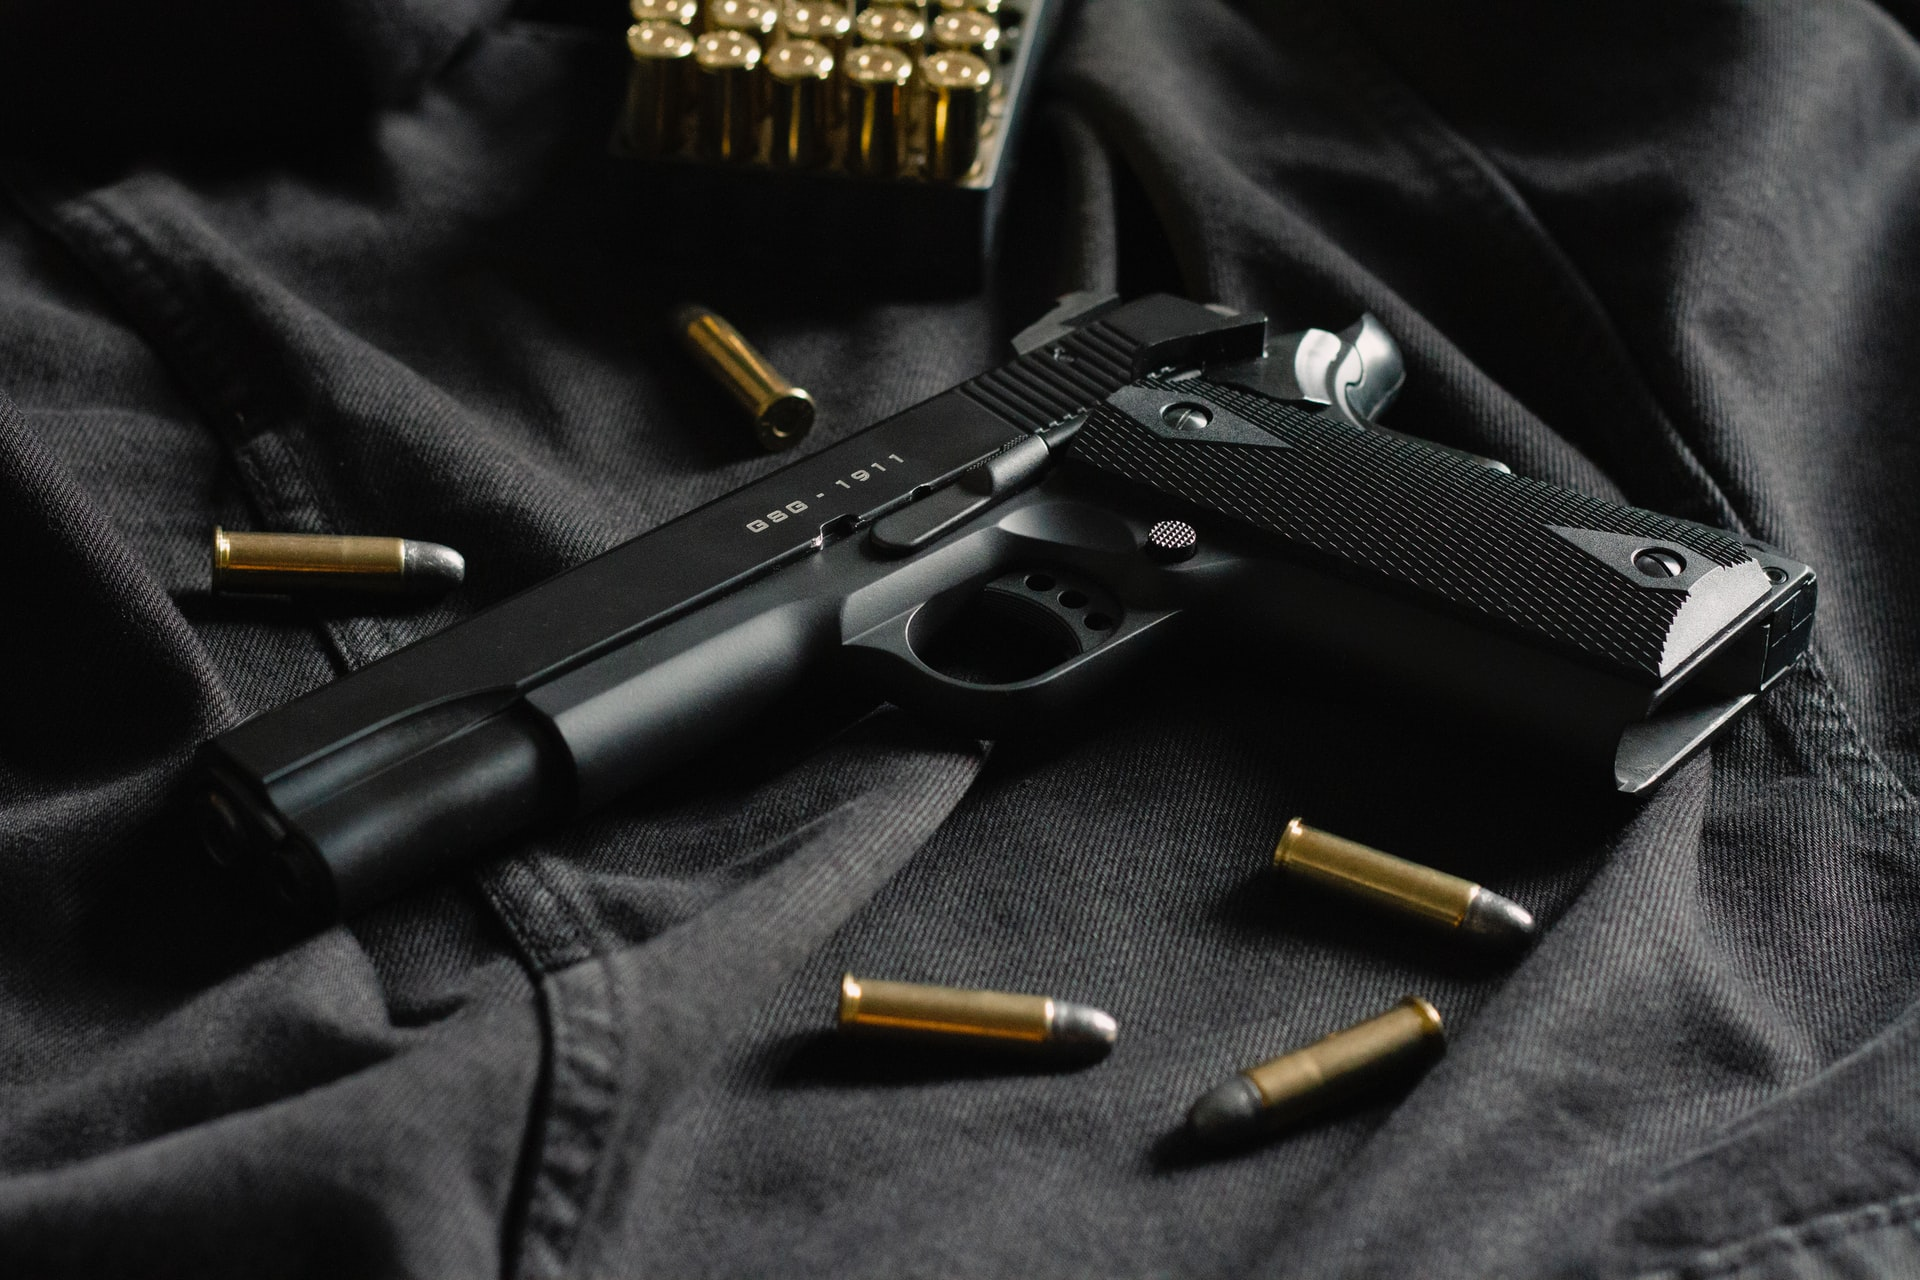 4 Things to Know About Concealed Weapon Carrying